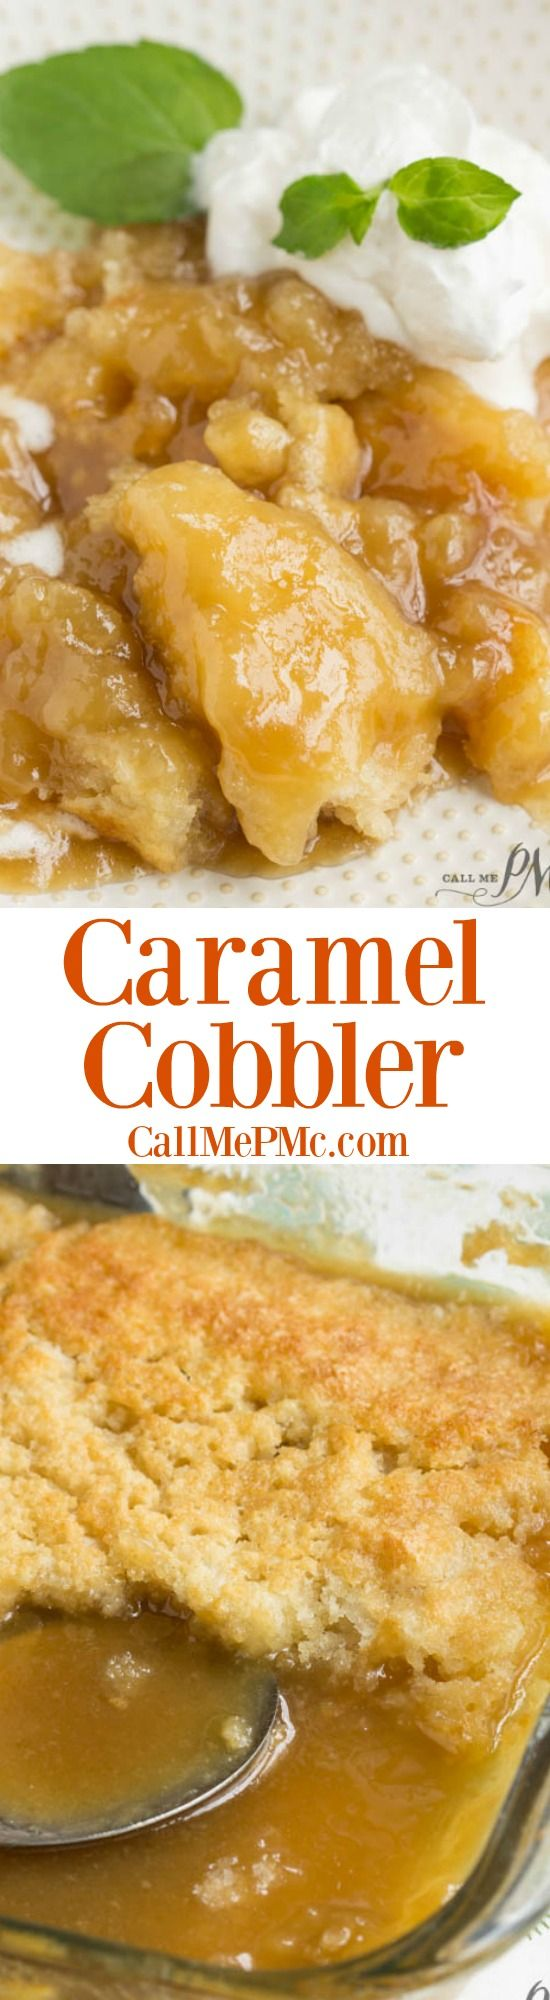 PMc's Caramel Cobbler is rich and buttery and takes just minutes to put together. Perfect for potluck and entertaining. This Caramel Cobbler has a decadent, self-made caramel sauce that you'll want to keep eating and eating!